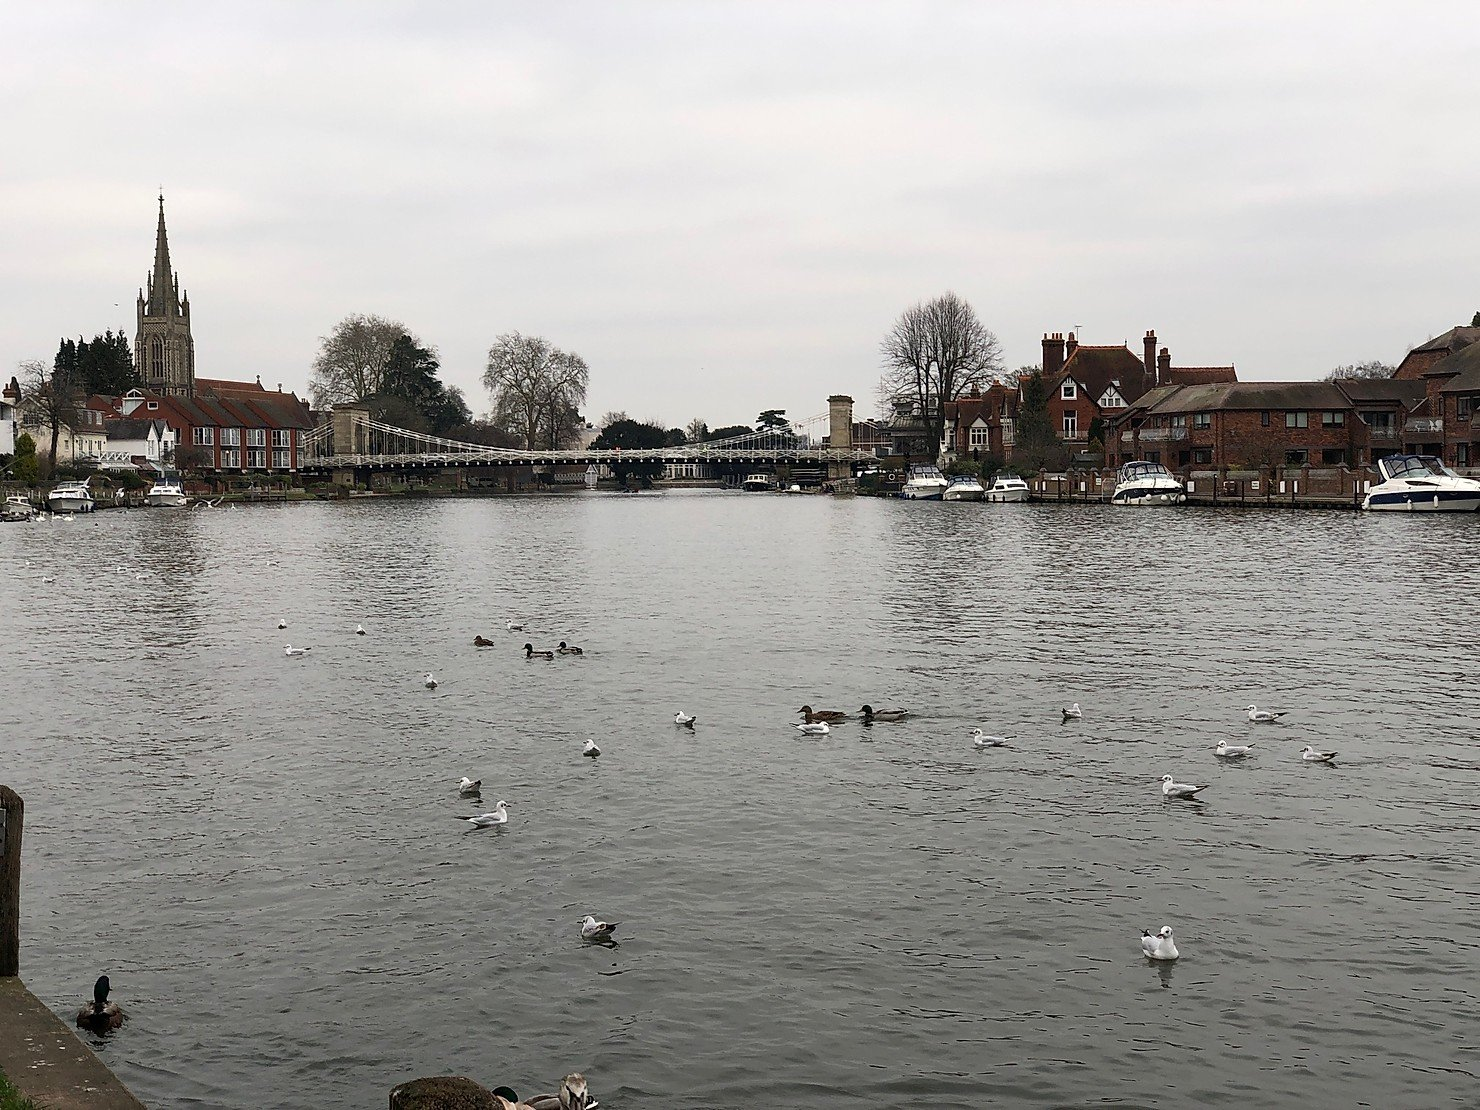 A family walk in Marlow